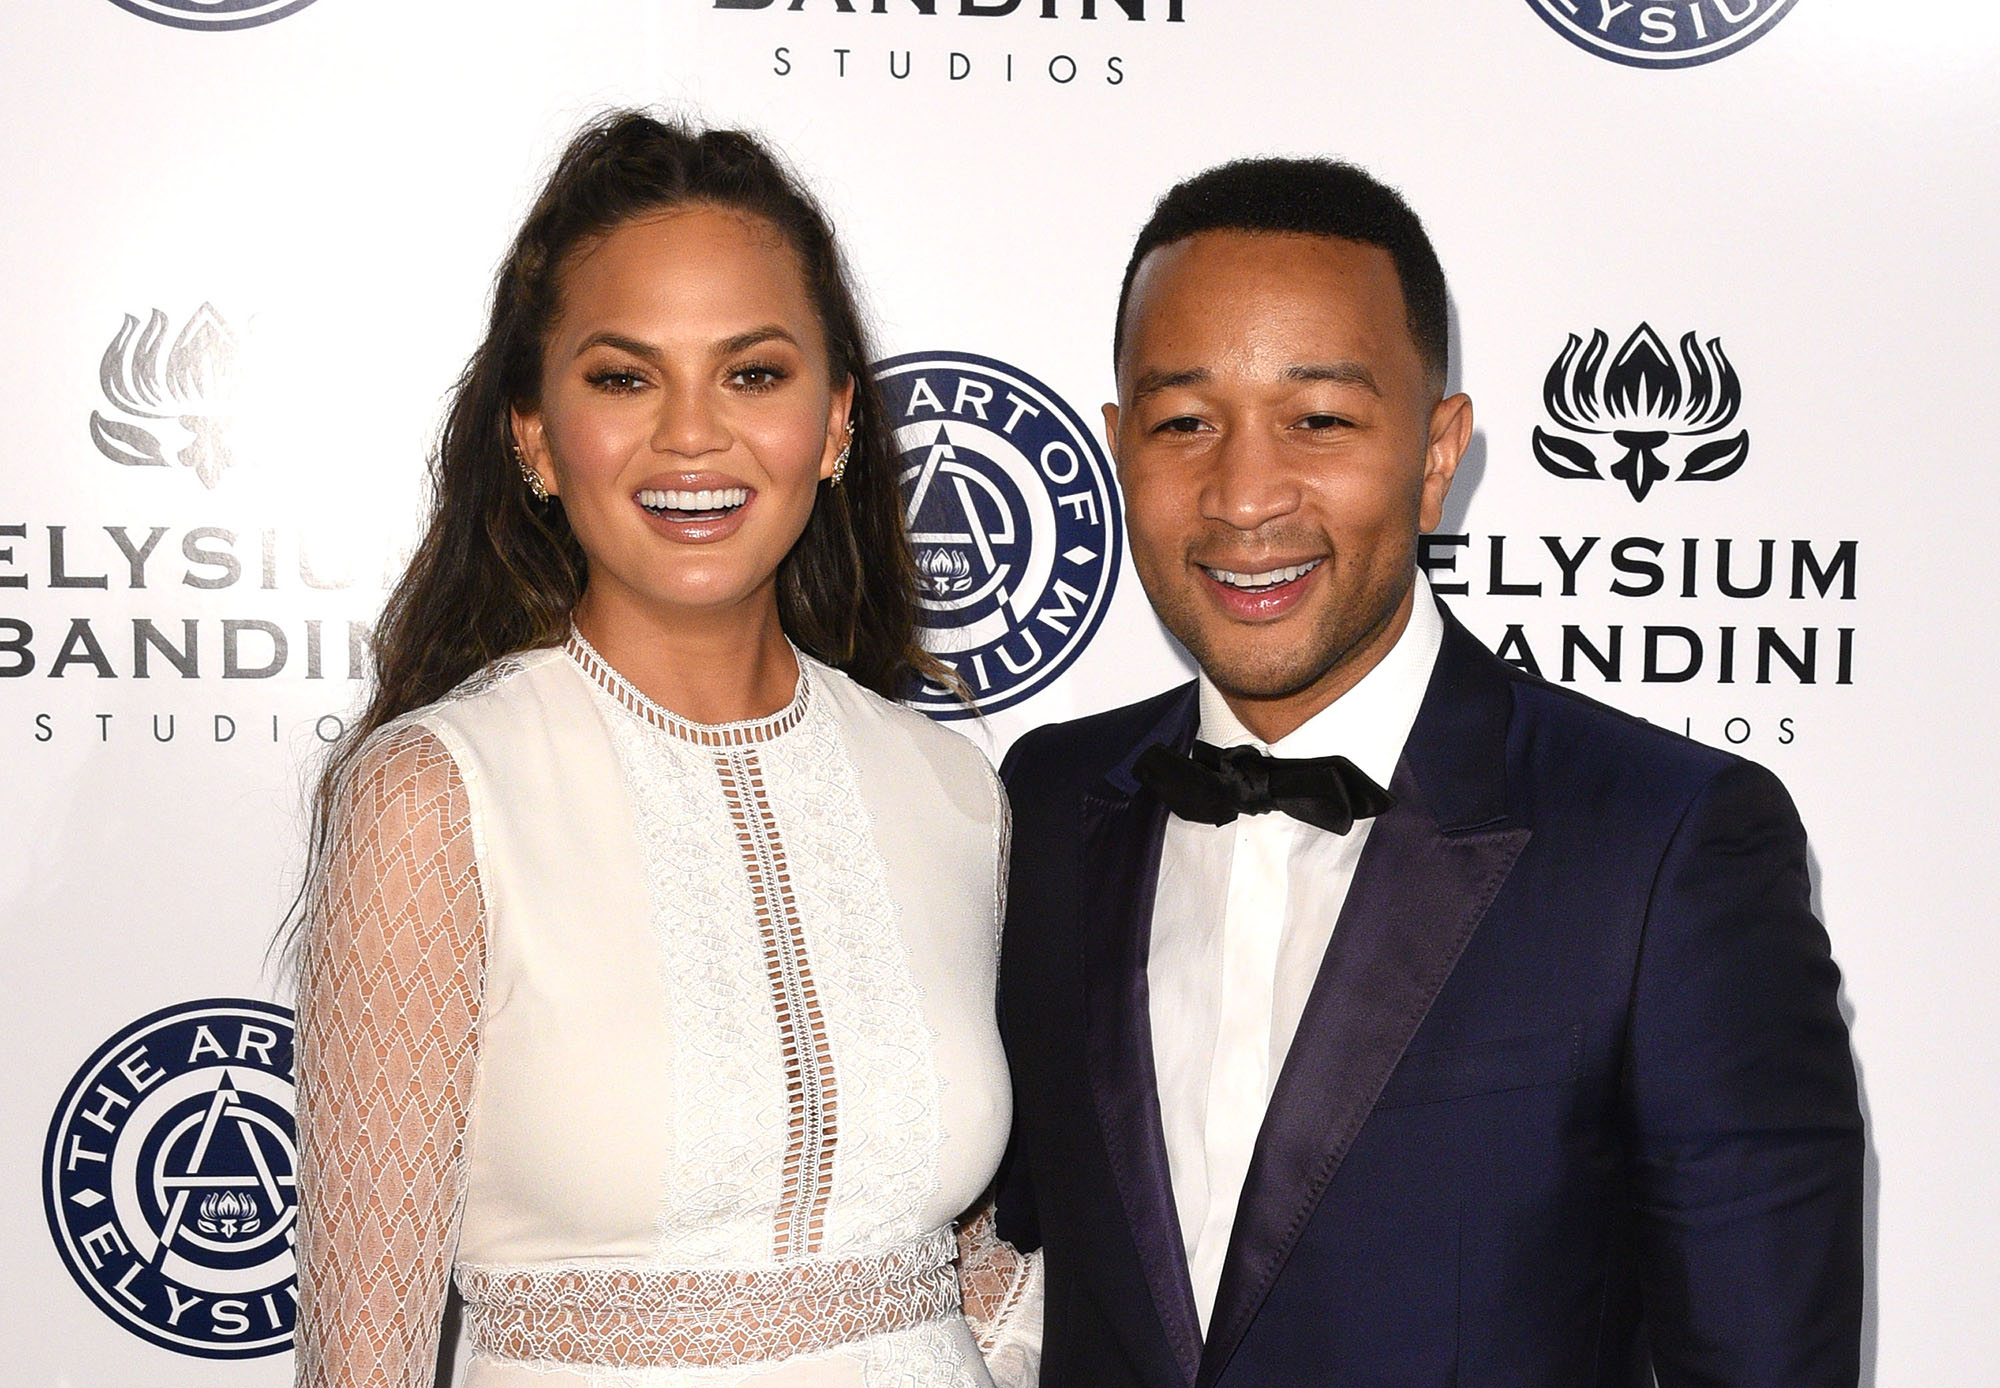 Chrissy Teigen and John Legend attend The Art of Elysium presents Stevie Wonder's HEAVEN - Celebrating the 10th Anniversary at Red Studios on January 7, 2017 in Los Angeles, California.  (Photo by C Flanigan/Getty Images)